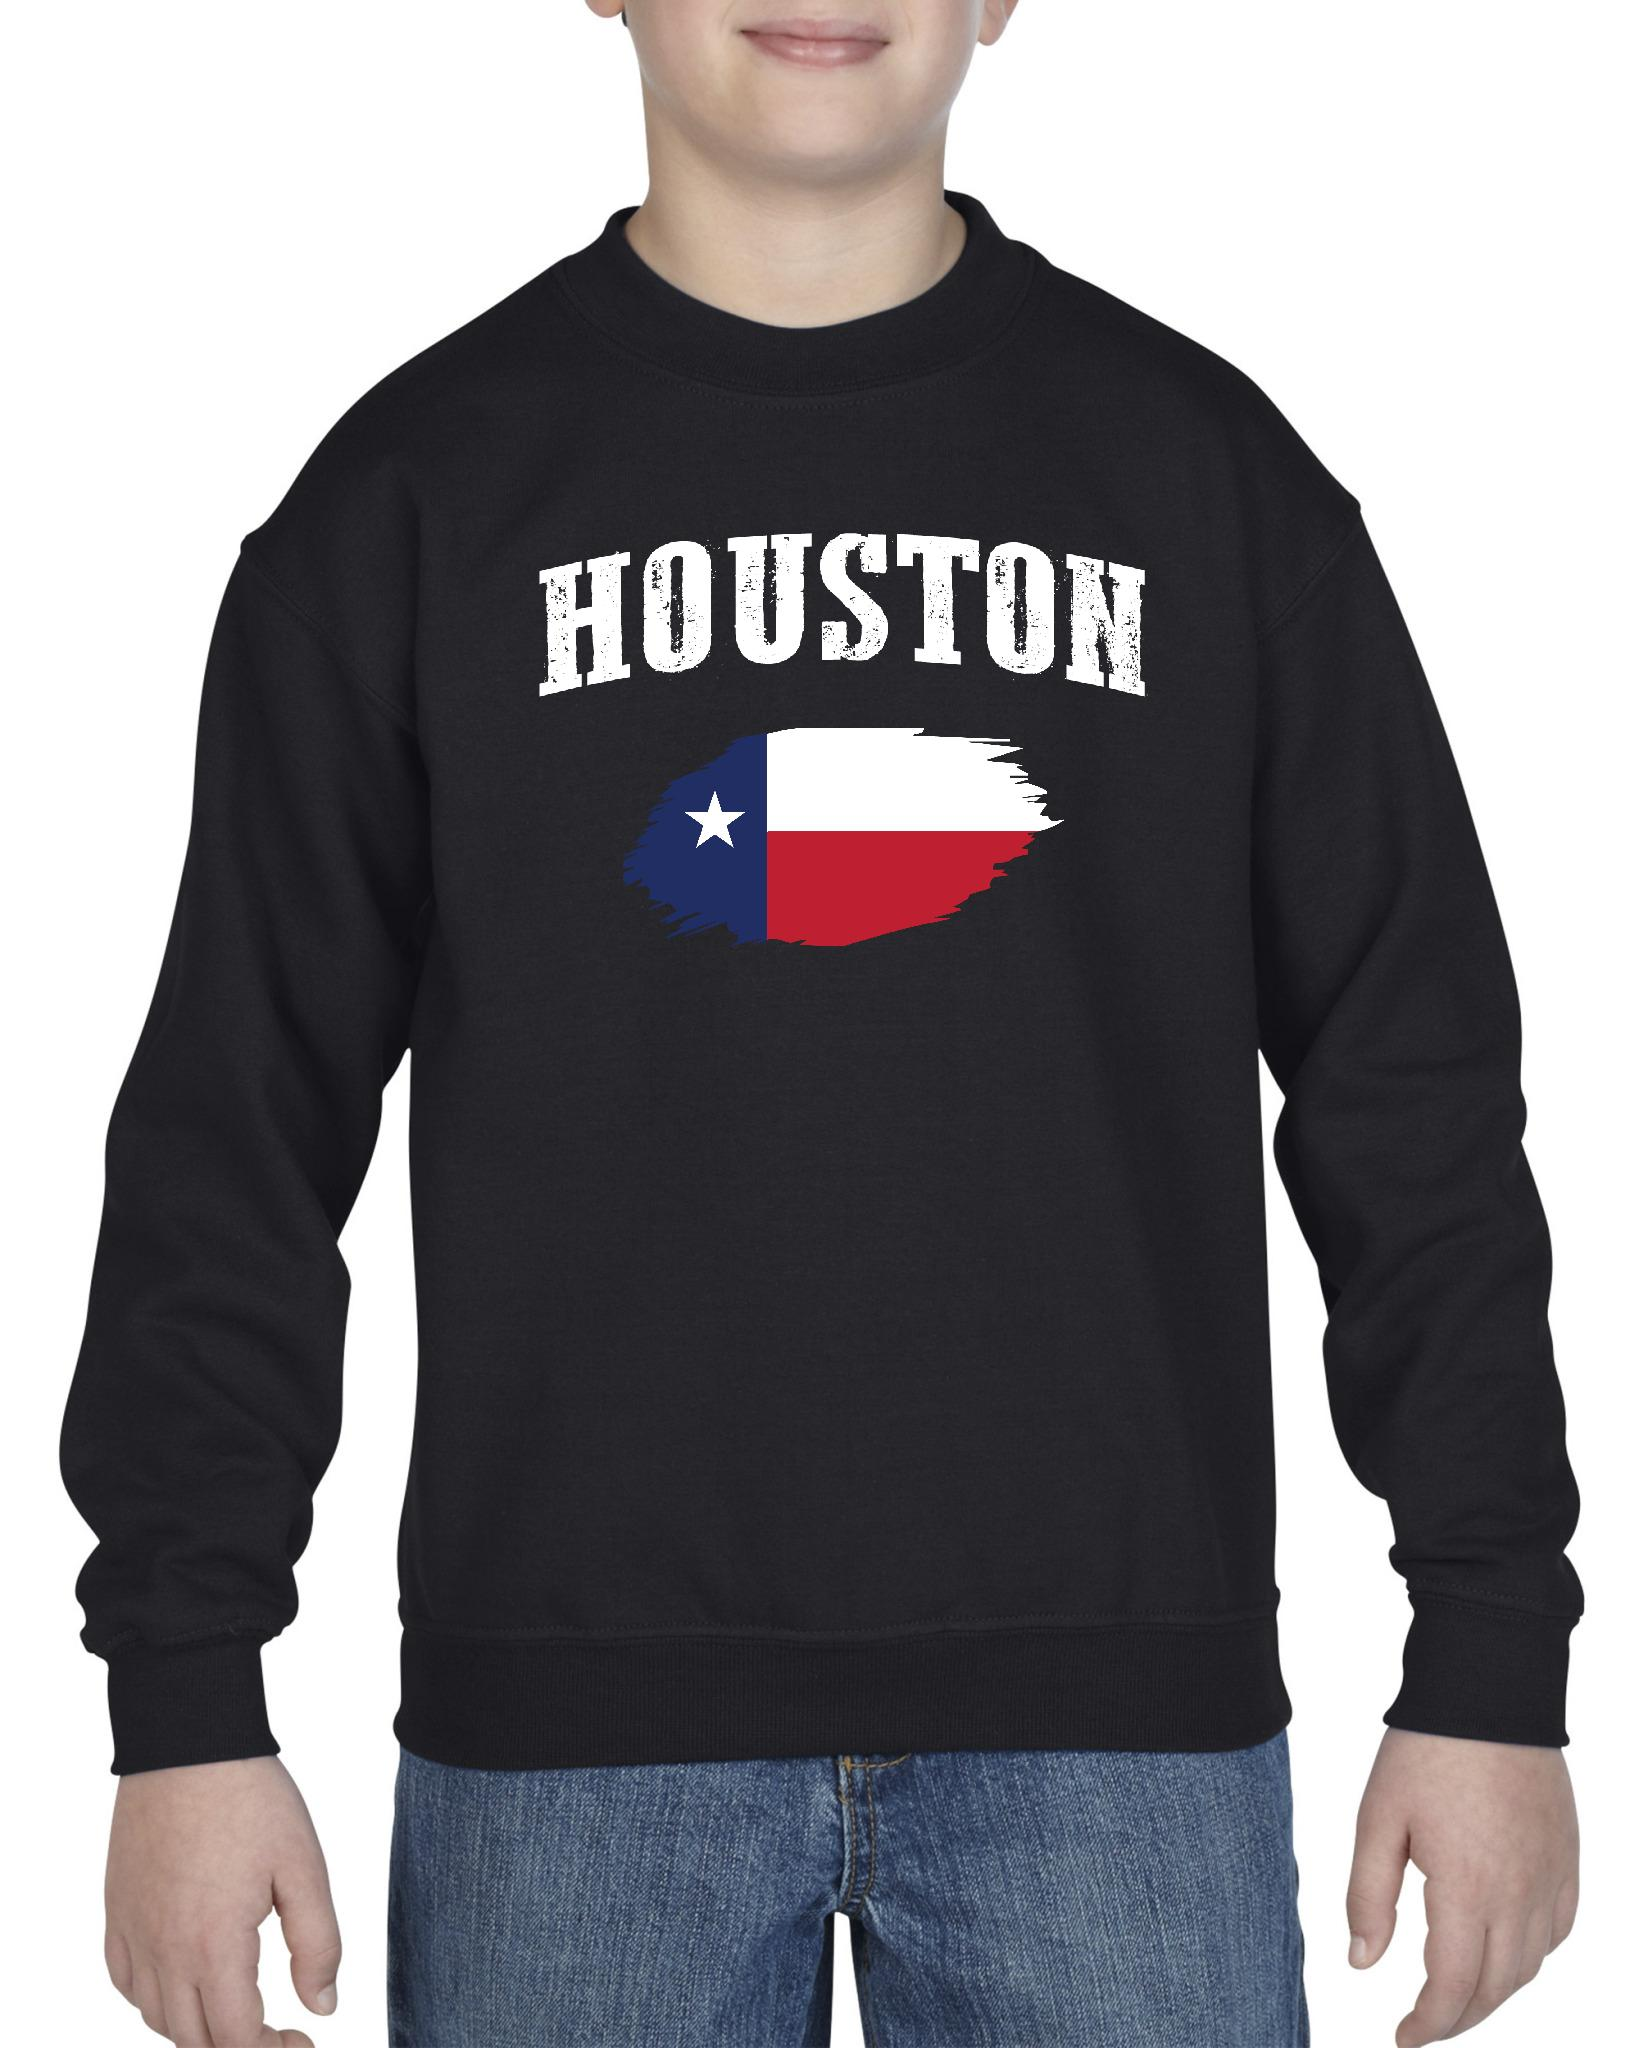 Houston Texas Youth Crewneck Sweatshirt